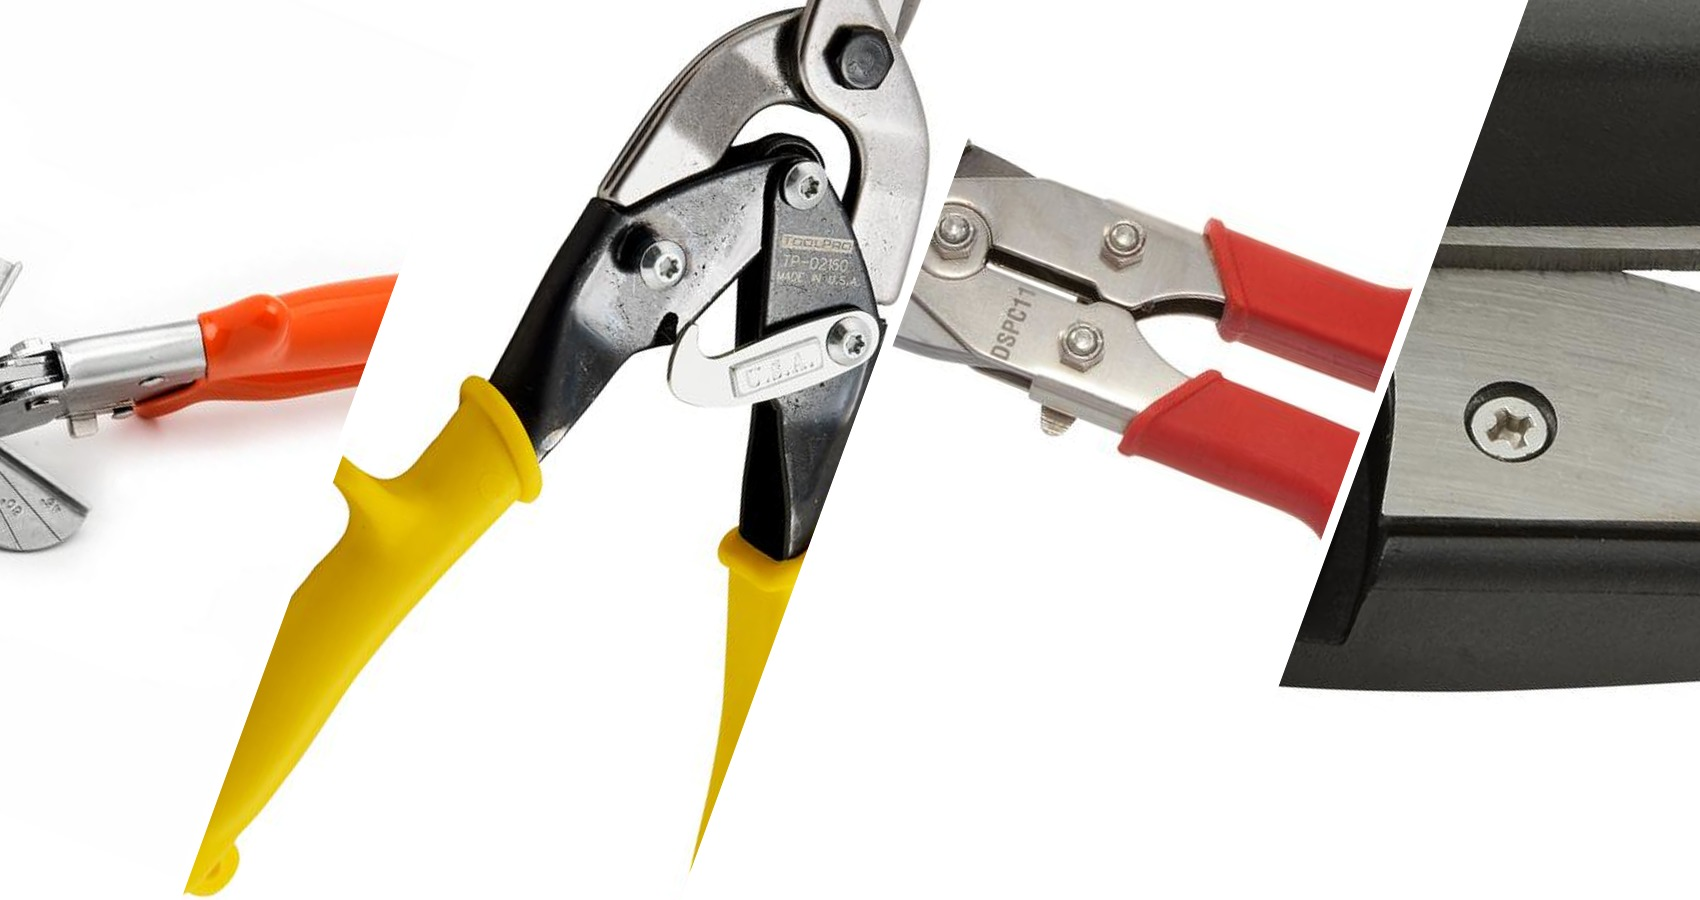 The 18 Best Snips & Sidecutters